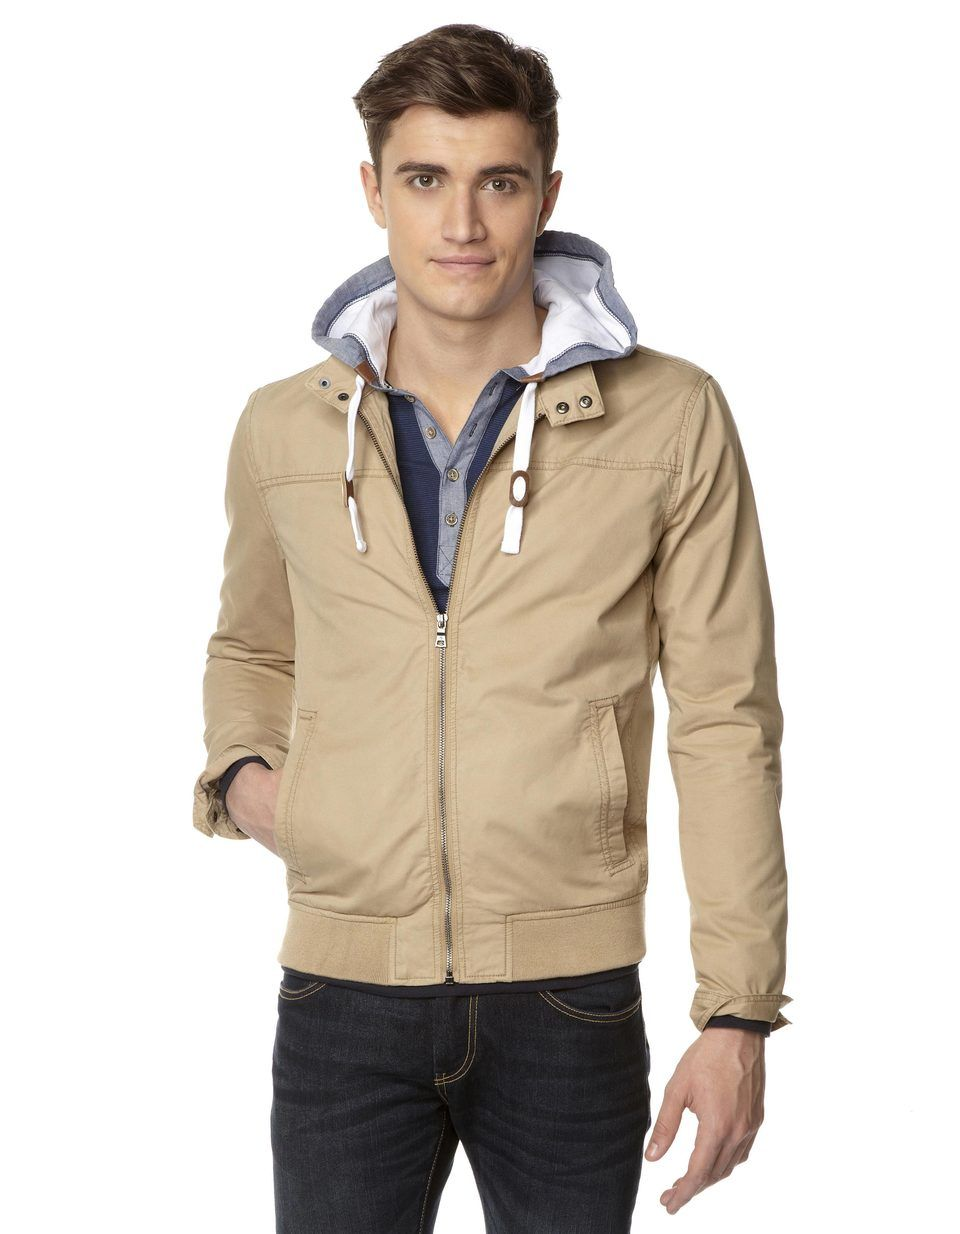 Blouson Harrington 100% coton - TUCOTTON - Celio France